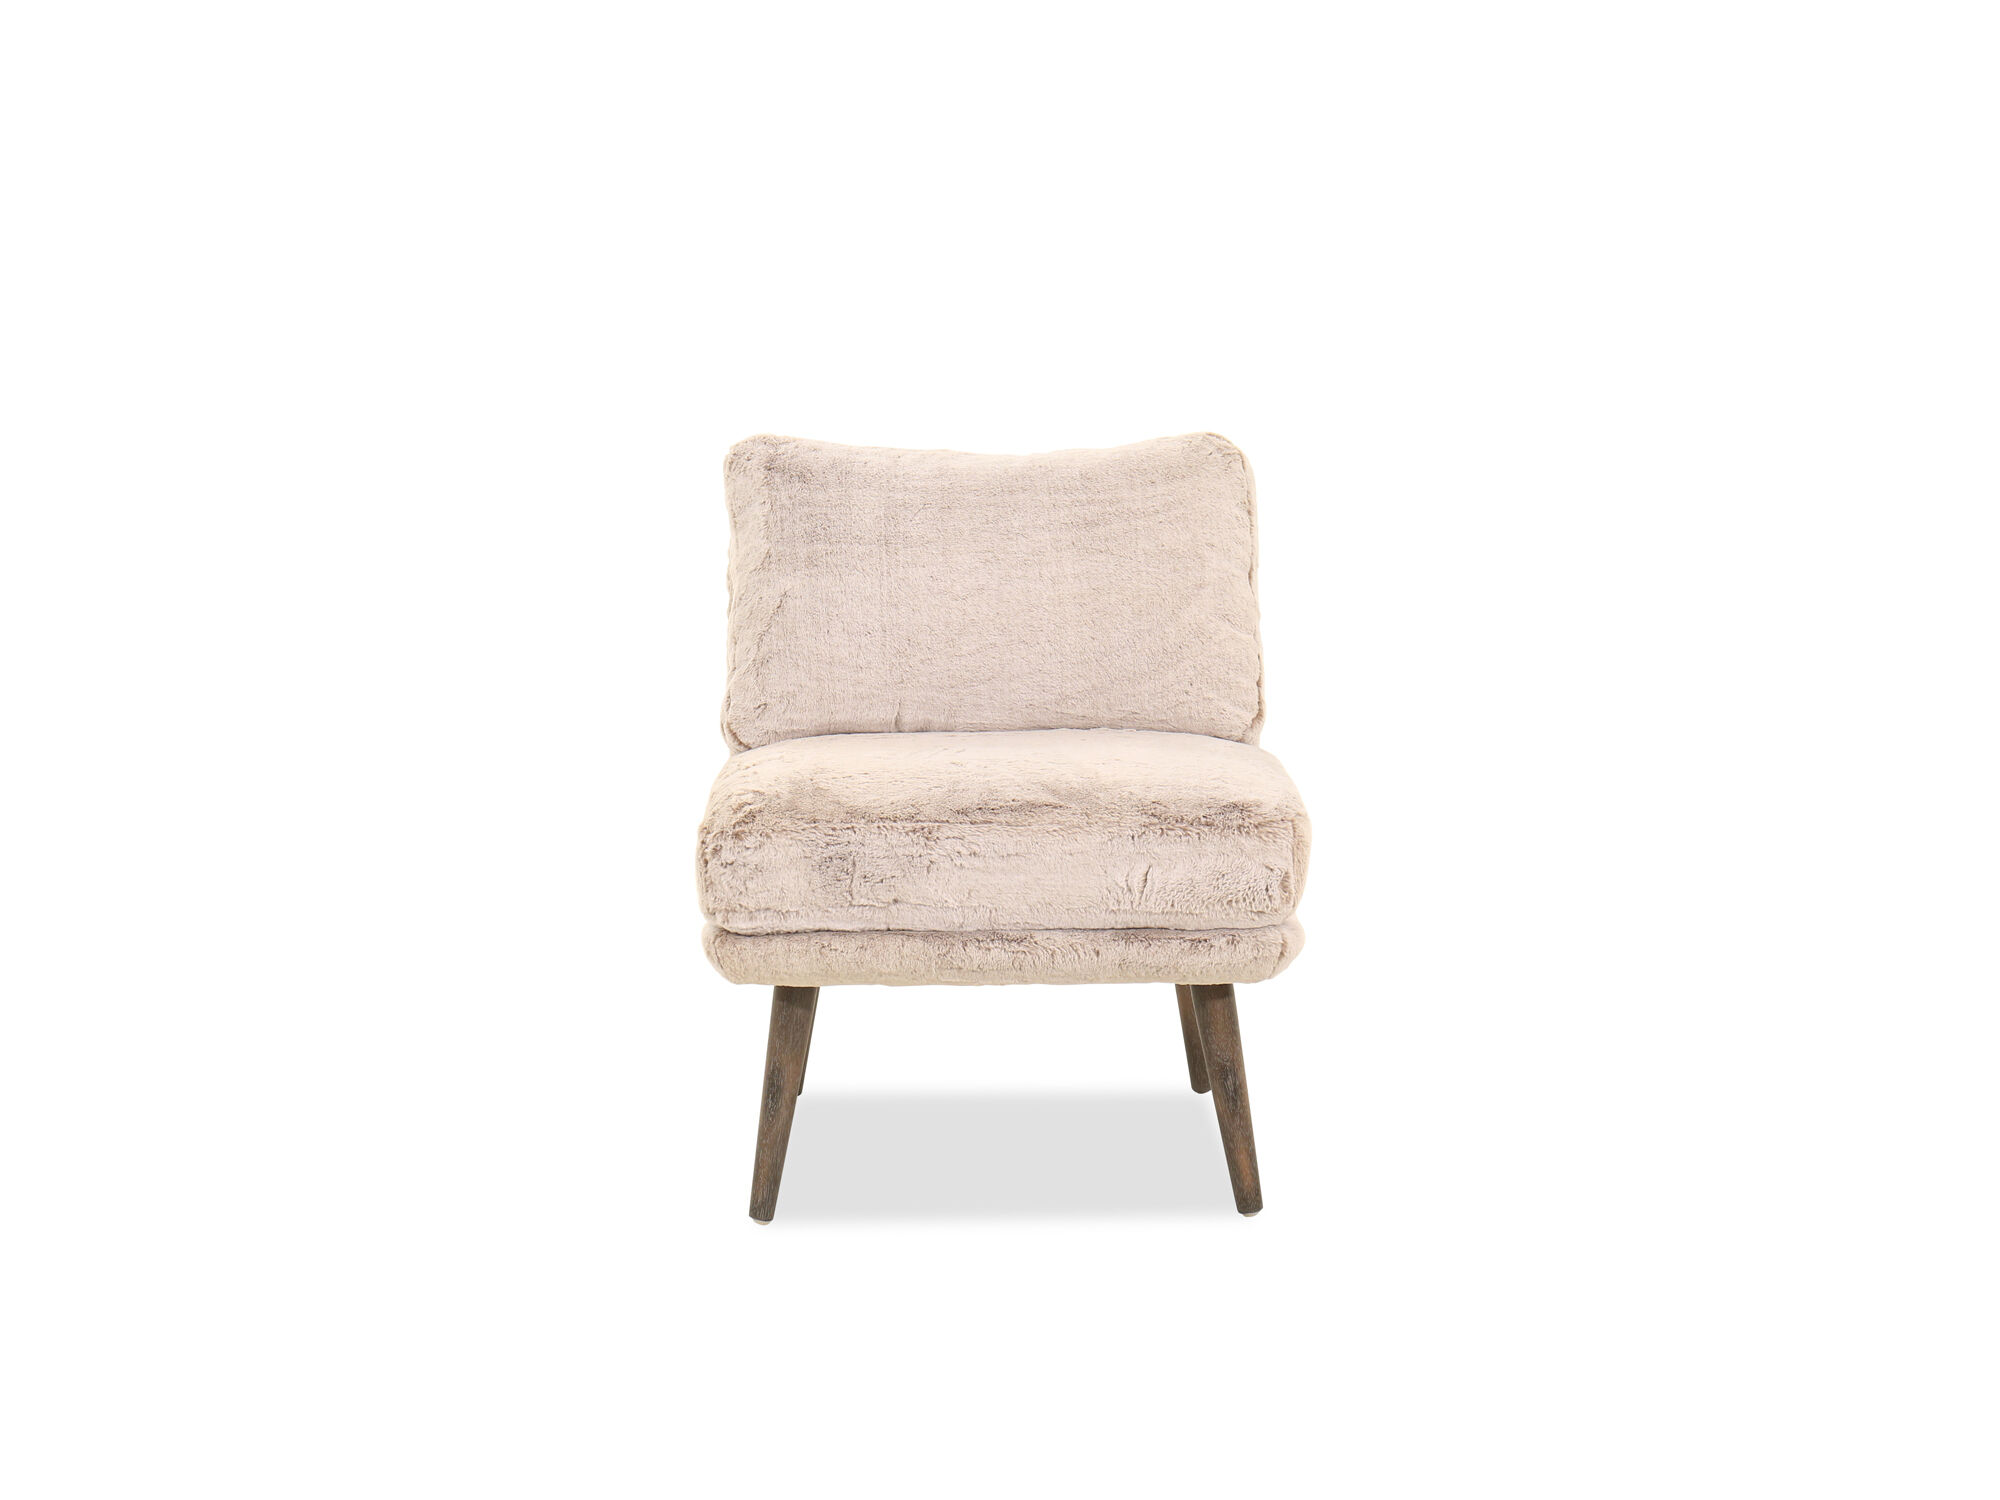 25 Contemporary Plush Accent Chair In Brown Mathis Brothers Furniture